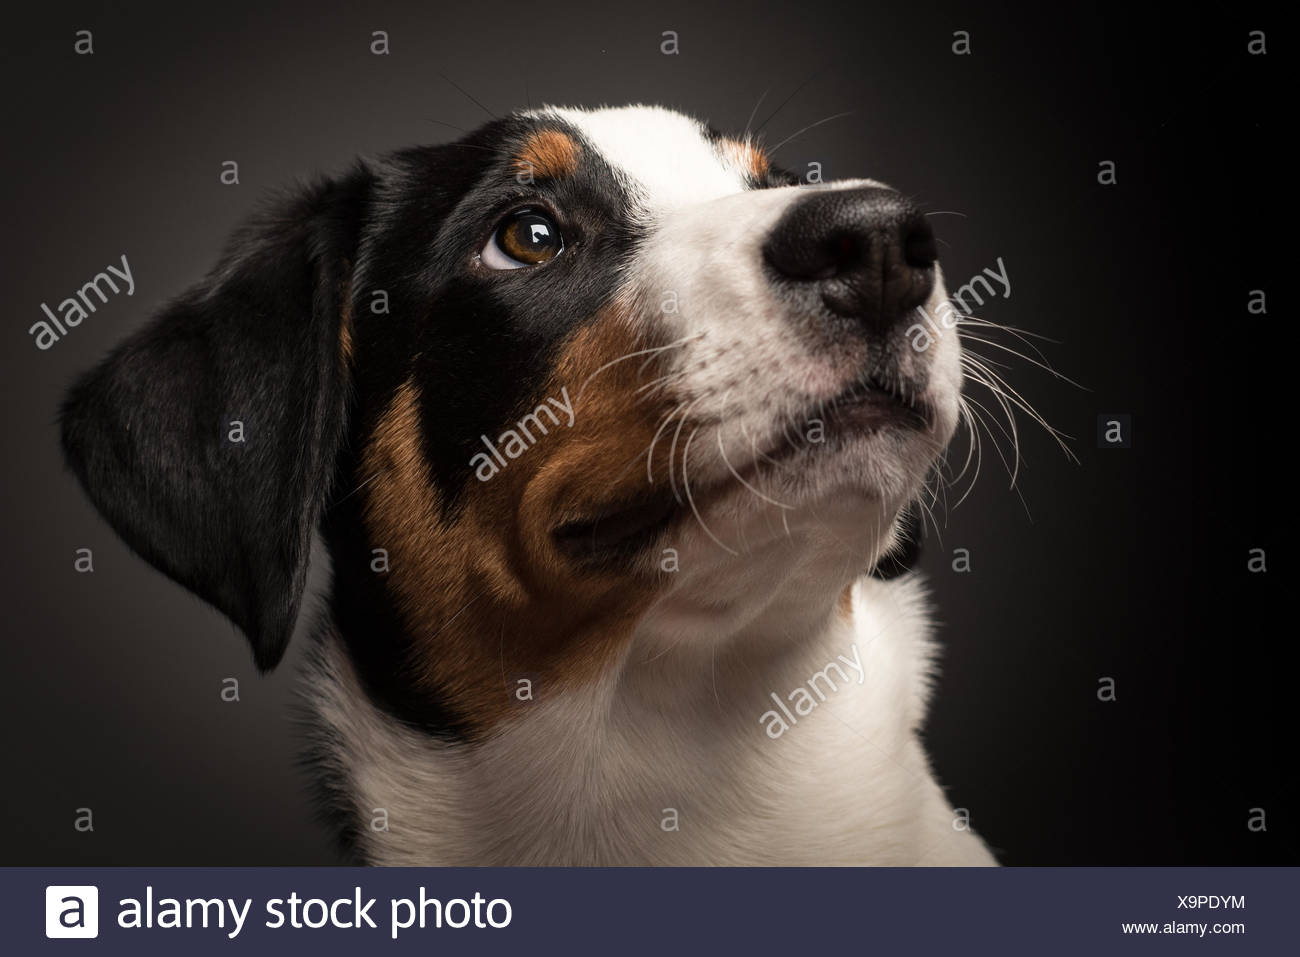 appenzeller in portrait on black - Stock Image